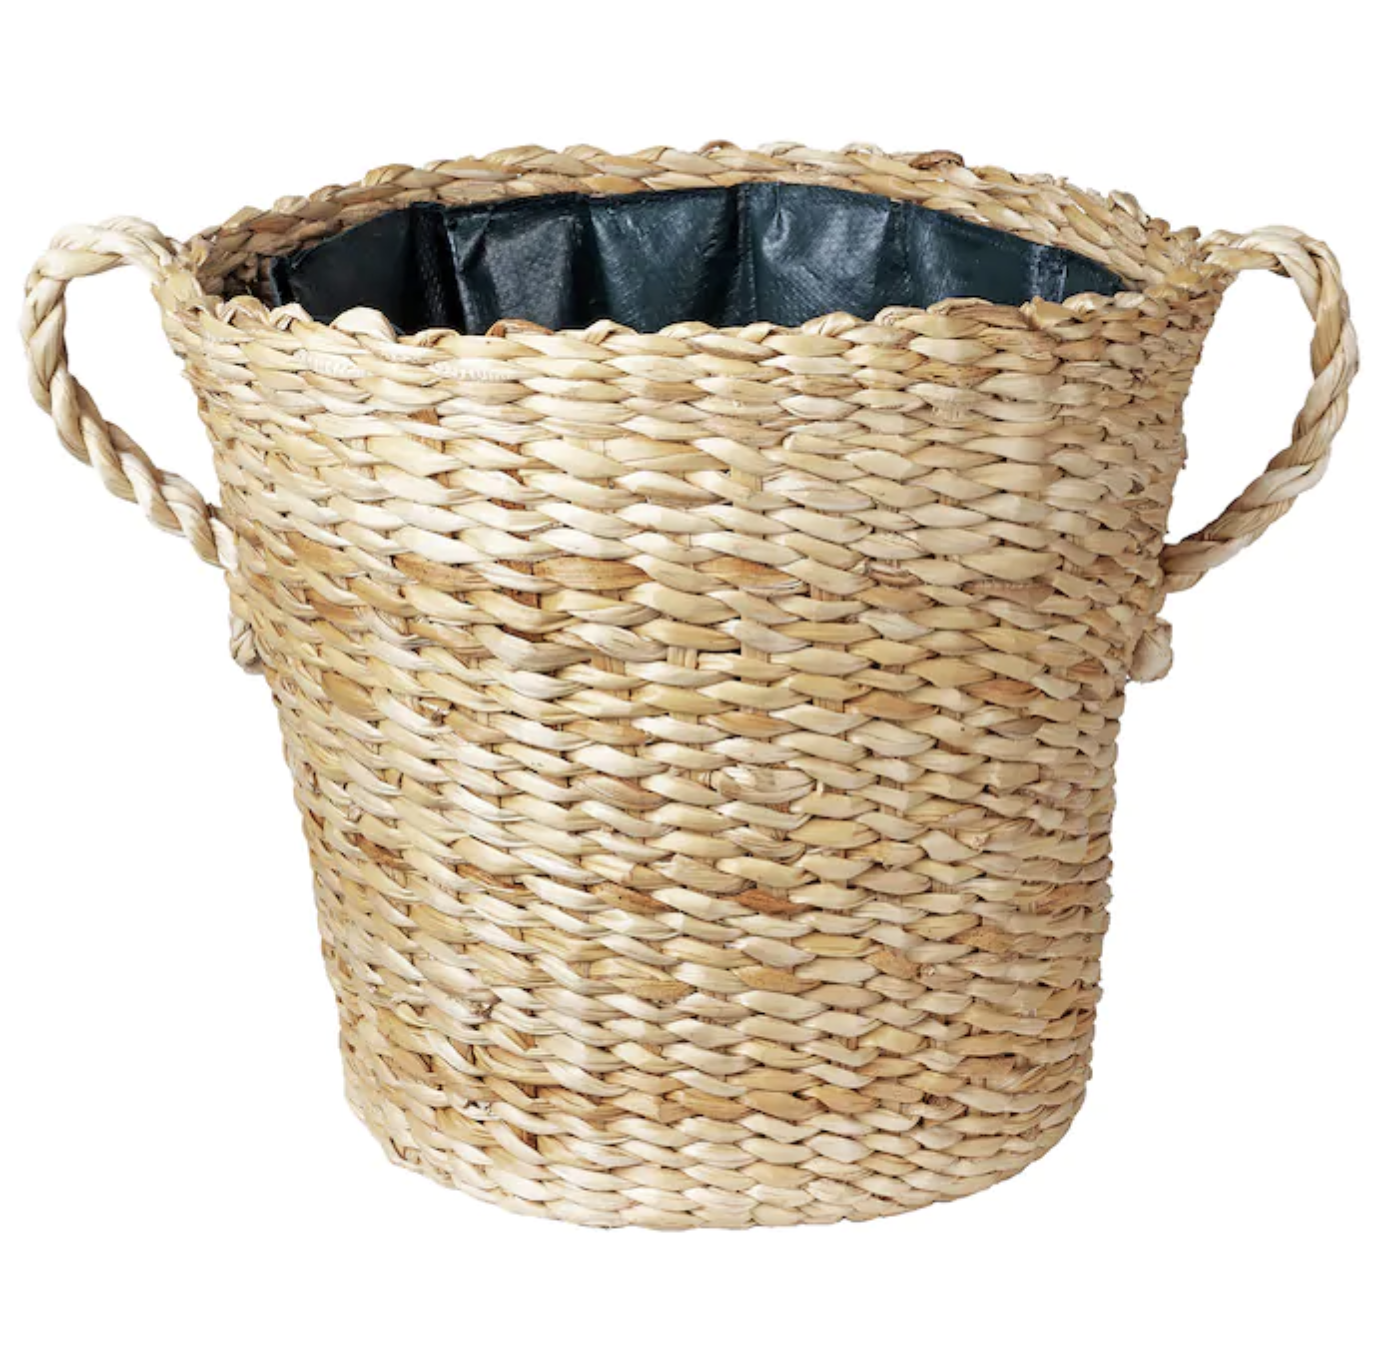 Ikea Launches New Affordable Woven Home Decor Pieces In Cane Rattan And Wicker Apartment Therapy